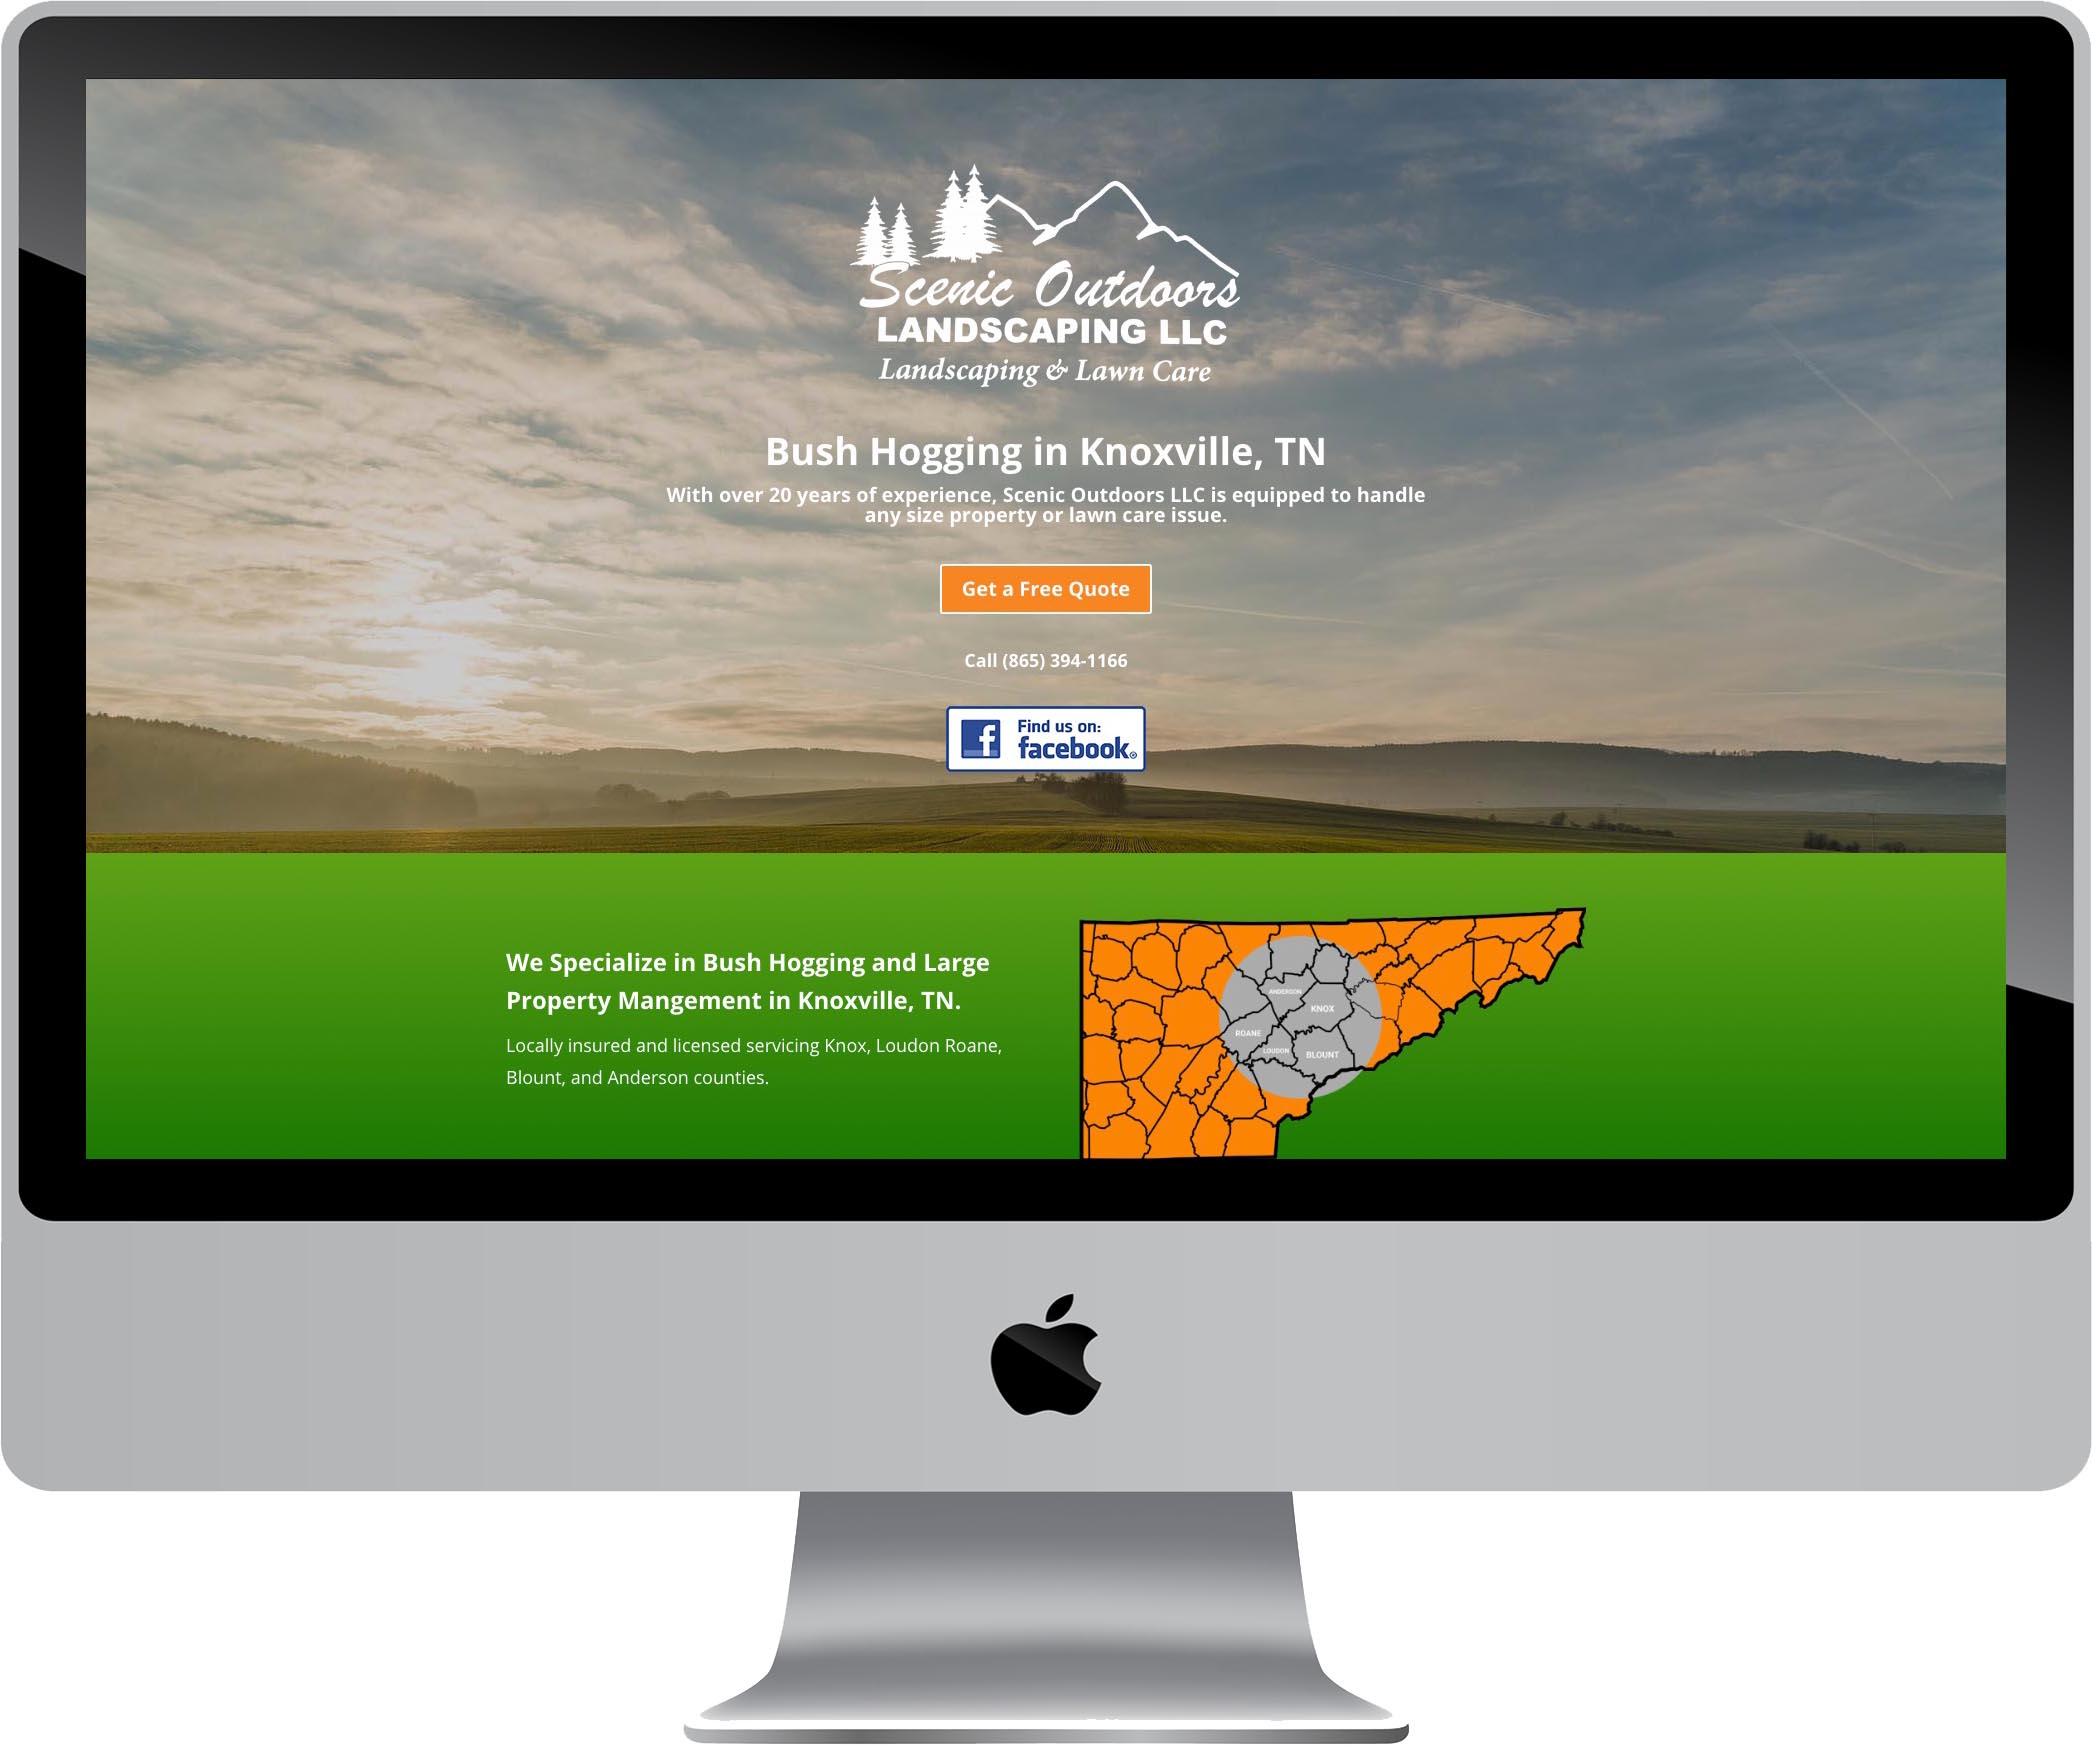 Scenic Outdoors Website Design